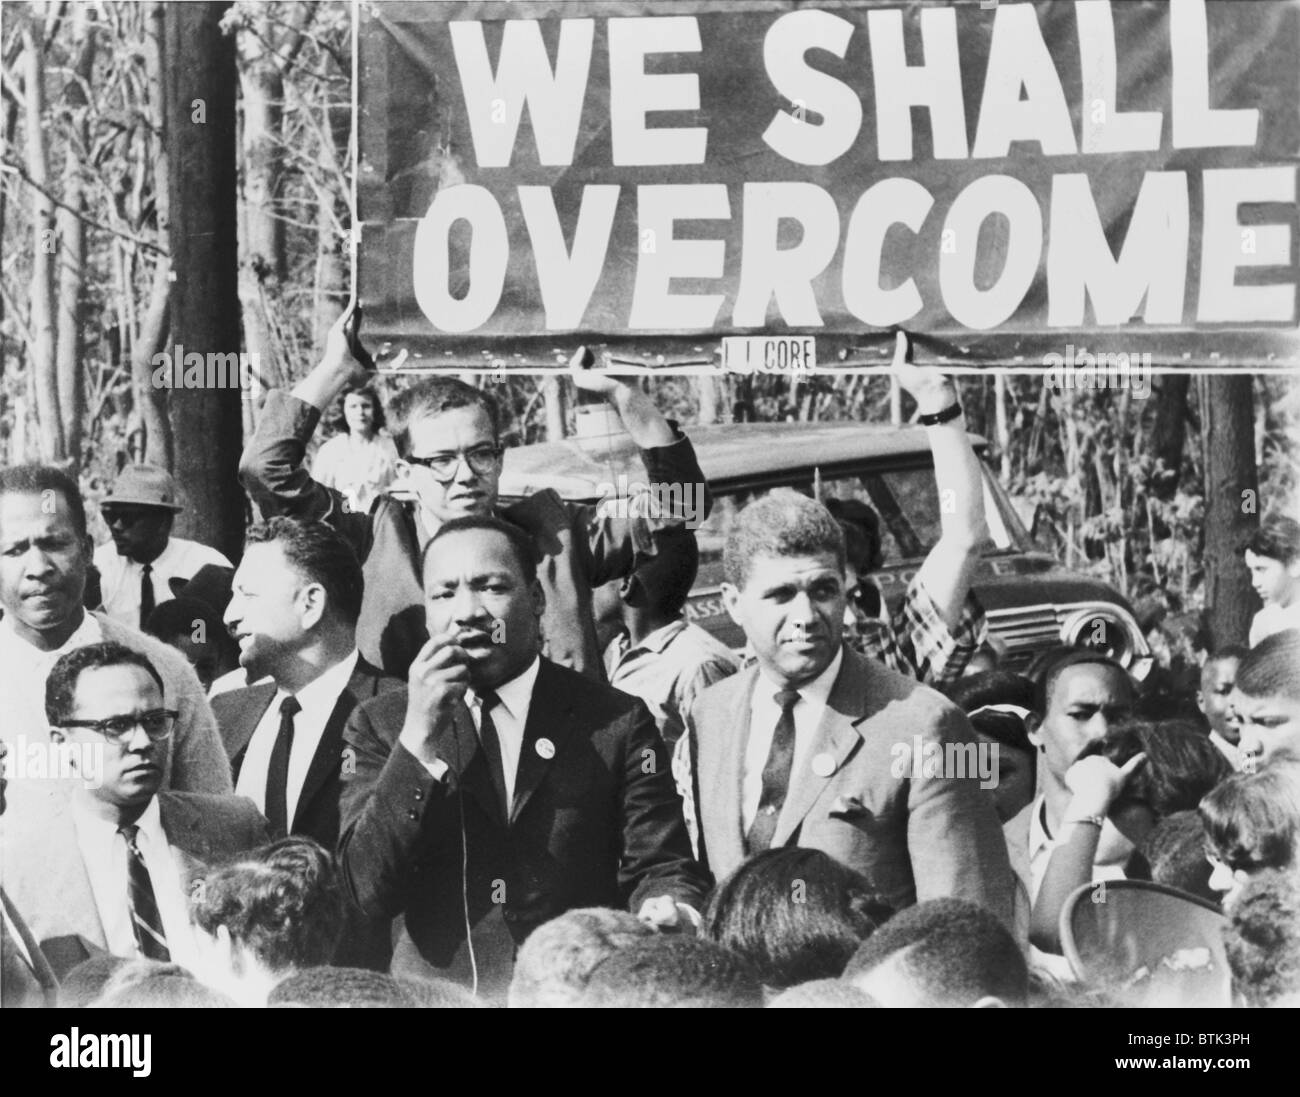 Martin Luther King, Jr. (1929-1968), addressing a crowd on a street in Lakeview, N.Y., May 12, 1965. - Stock Image